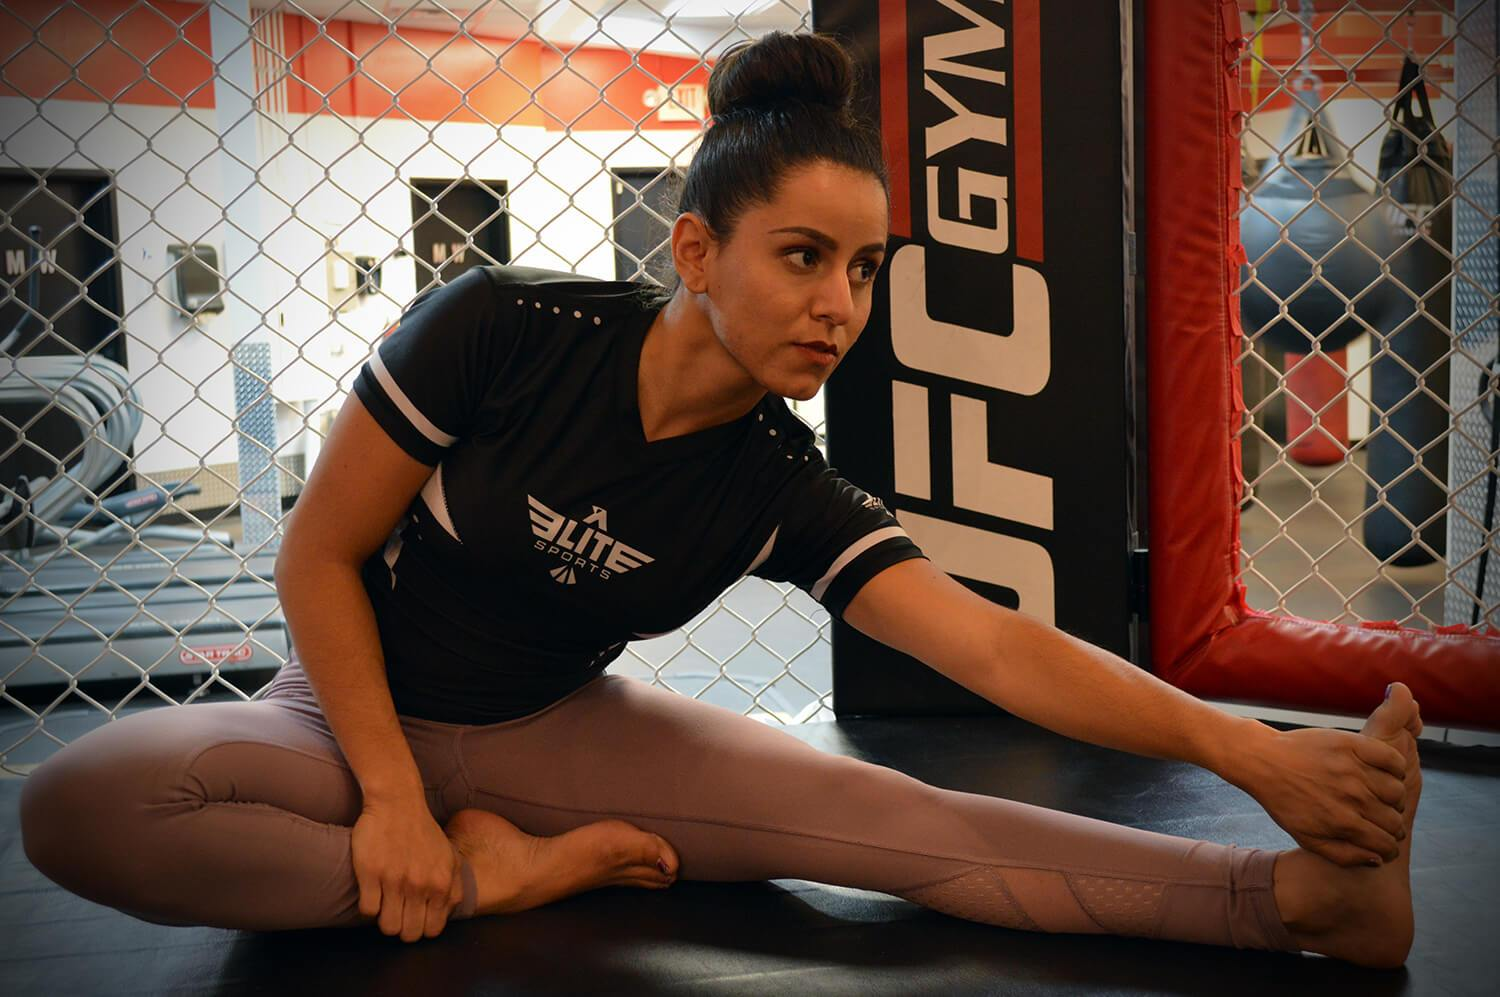 Elite-sports-Team-Elite-NO GI-Andria-Torrez-image2.jpeg